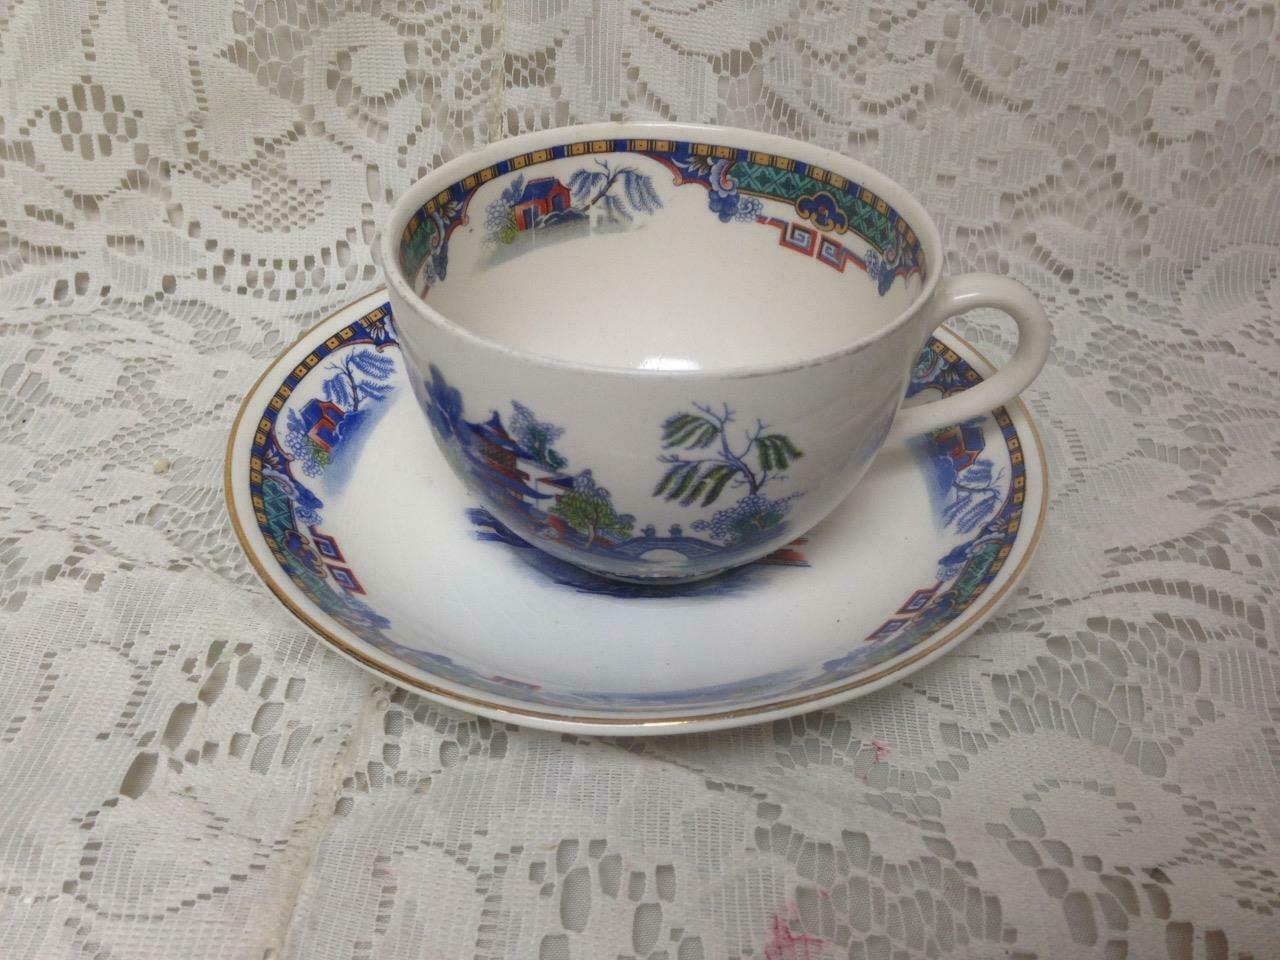 Primary image for Vintage, England, Parrot Pattern, Variant, Gaudy Blue Willow Cup and Saucer (b)